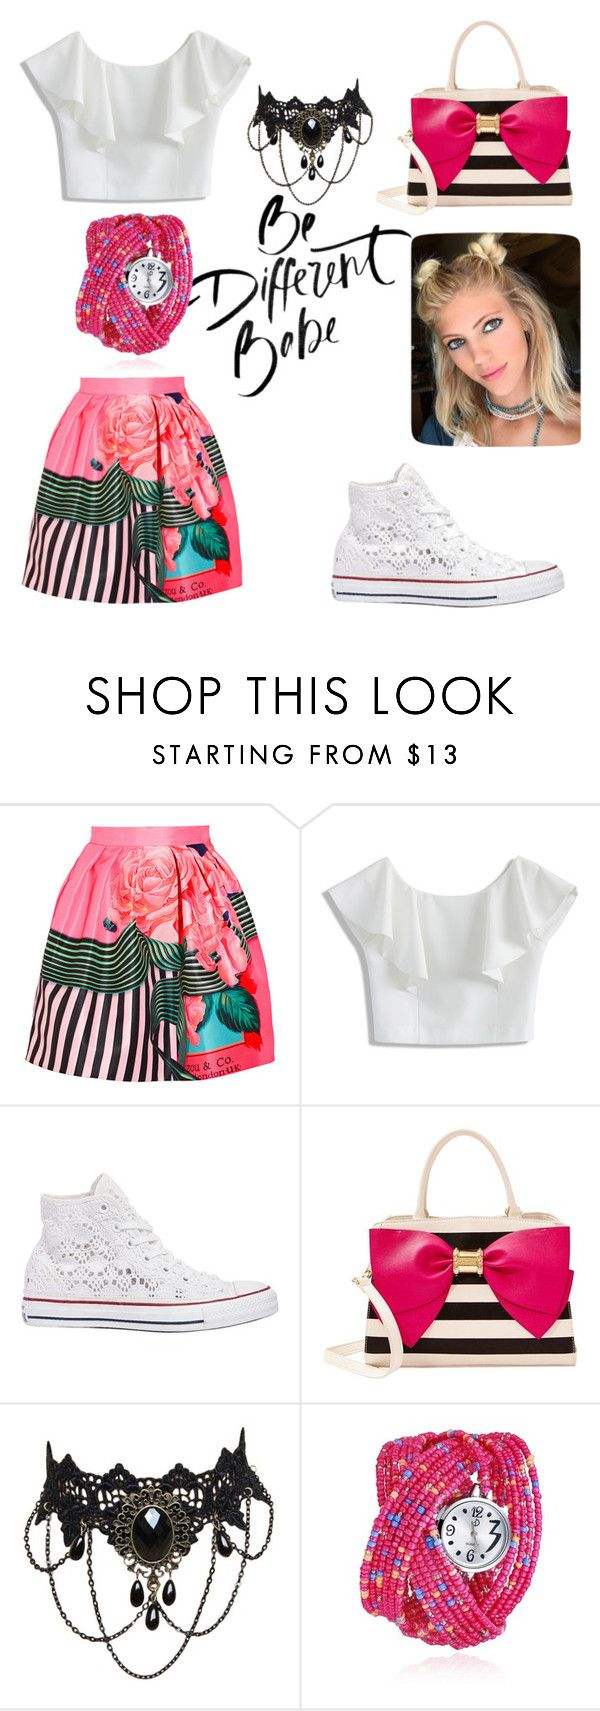 """""""Be Different in White Sneakers"""" by mel-c-n on Polyvore featuring Mary Katrantzou, Chicwish, Converse, Betsey Johnson, polyvorecontest and whitesneakers"""